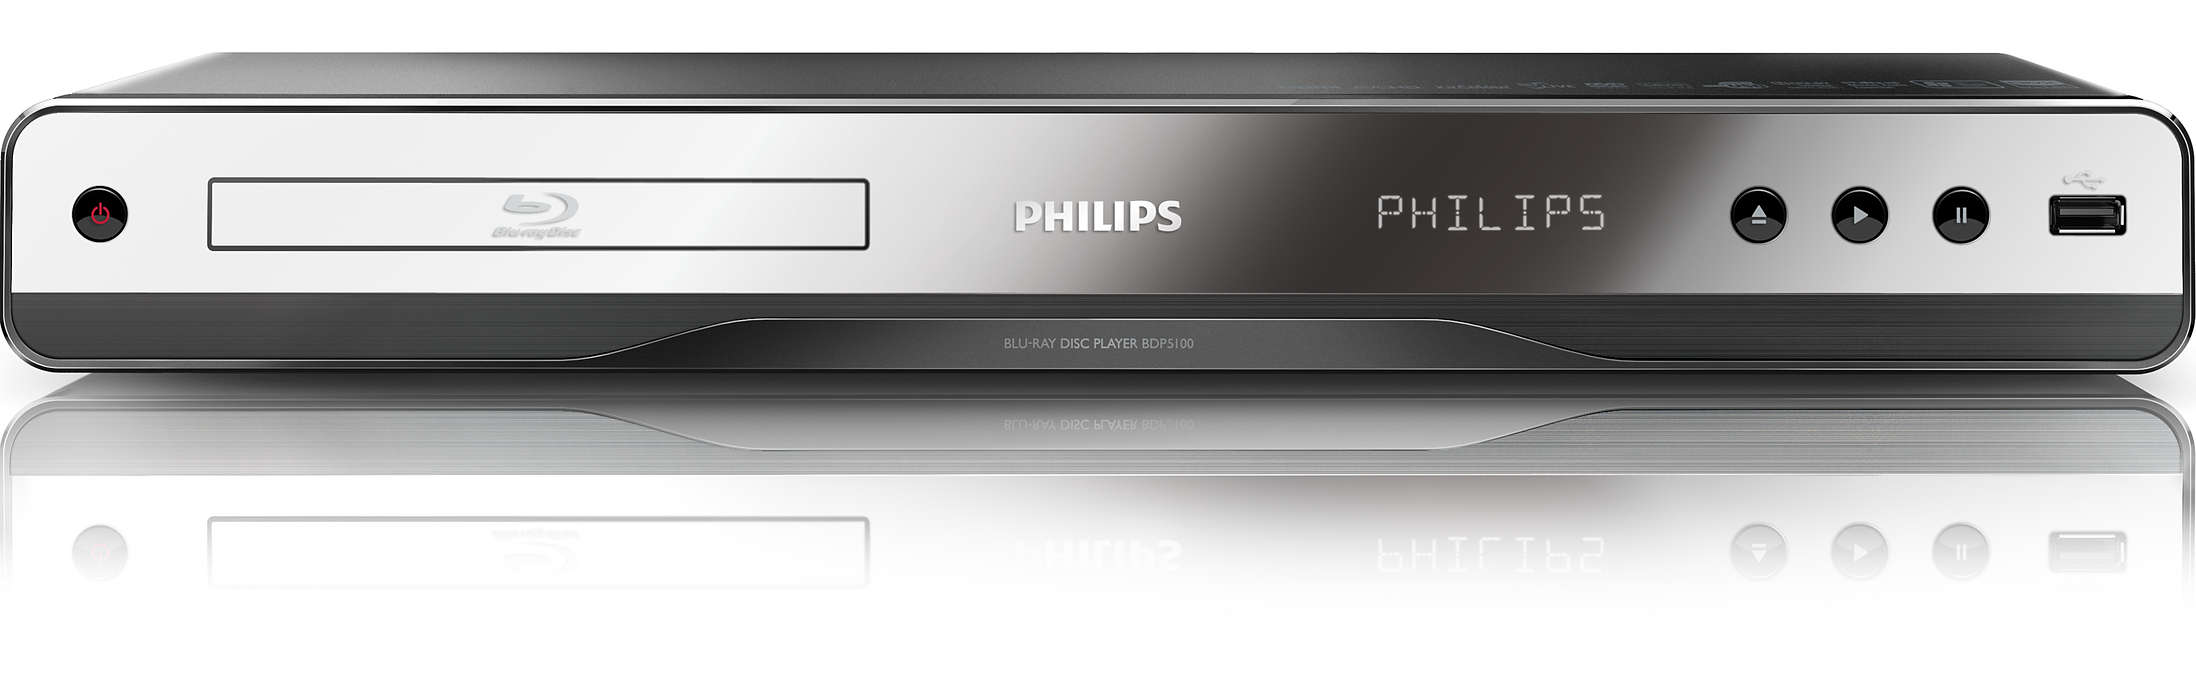 Enjoy Blu-ray and your favourite PC videos.